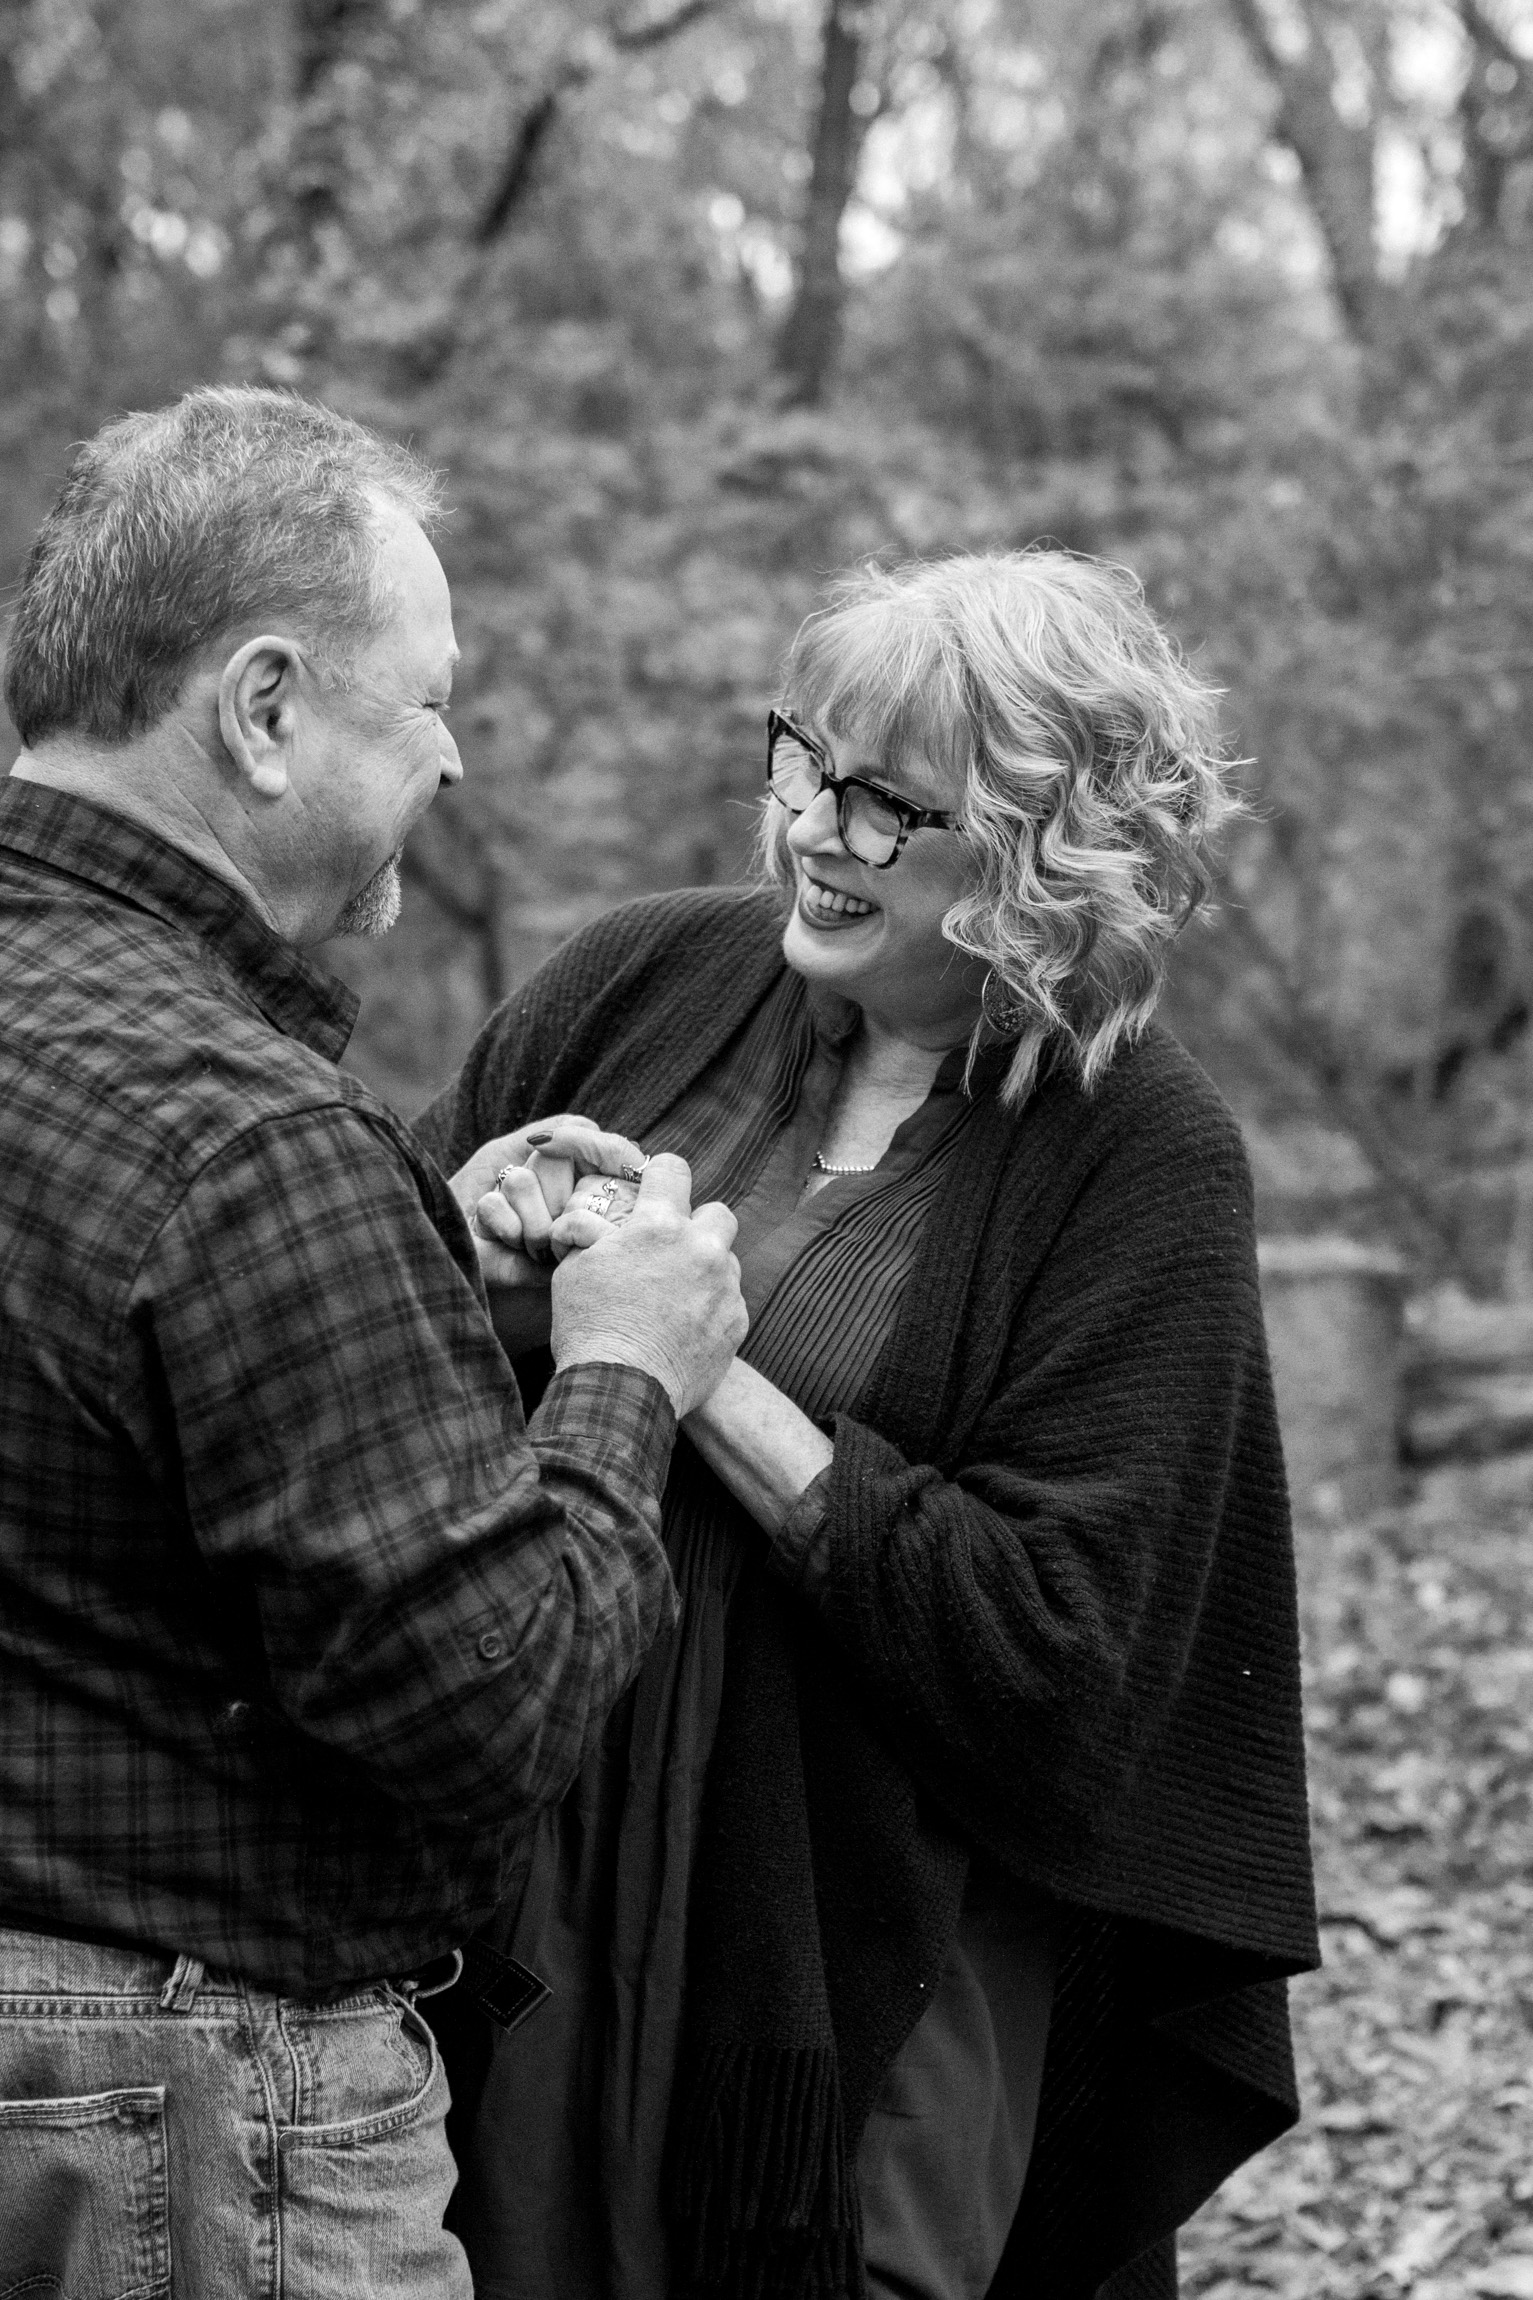 Kansas City lifestyle photographer, Kansas City family photographer, extended family session, fall family photos in the woods, older couple holding hands, grandparents portrait, black and white portrait